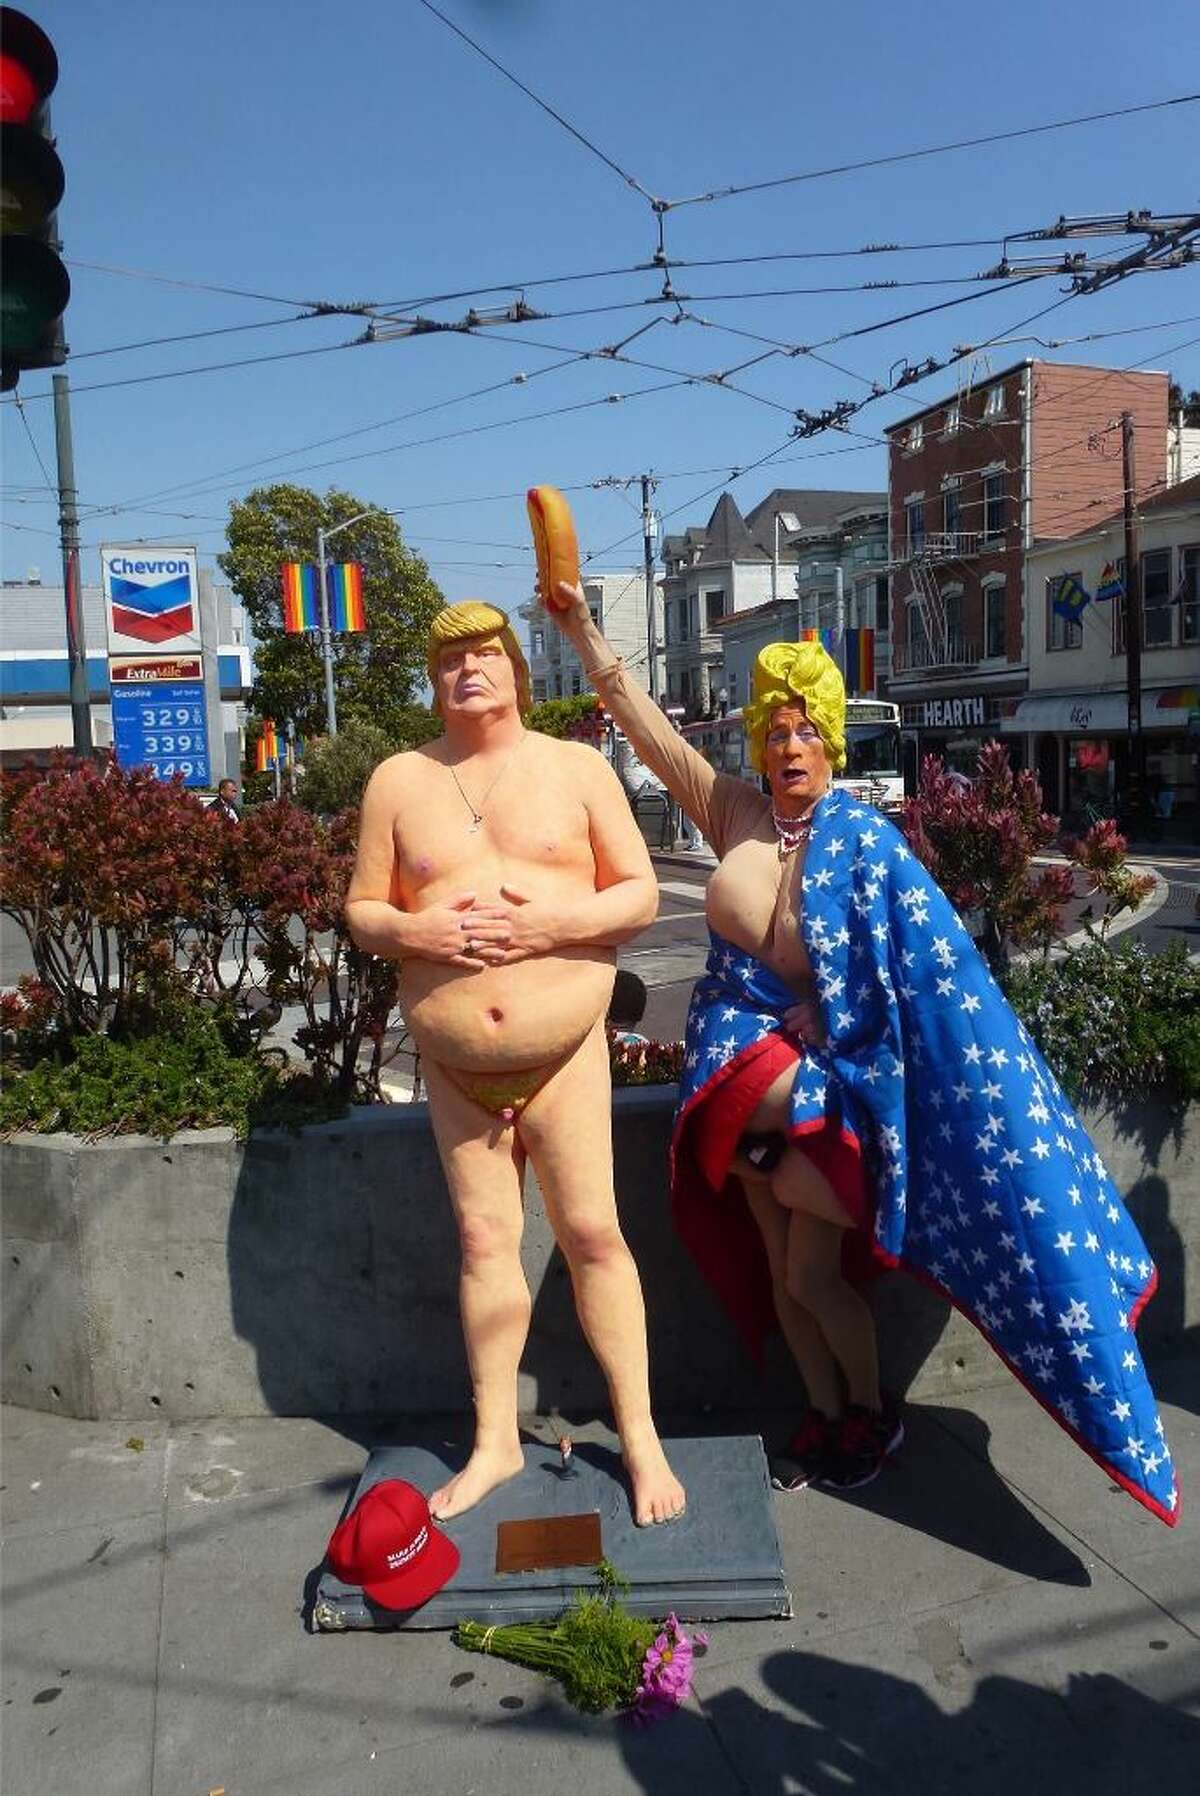 Mrs. Vera poses with the naked Donald Trump statue in San Francisco's Castro District.